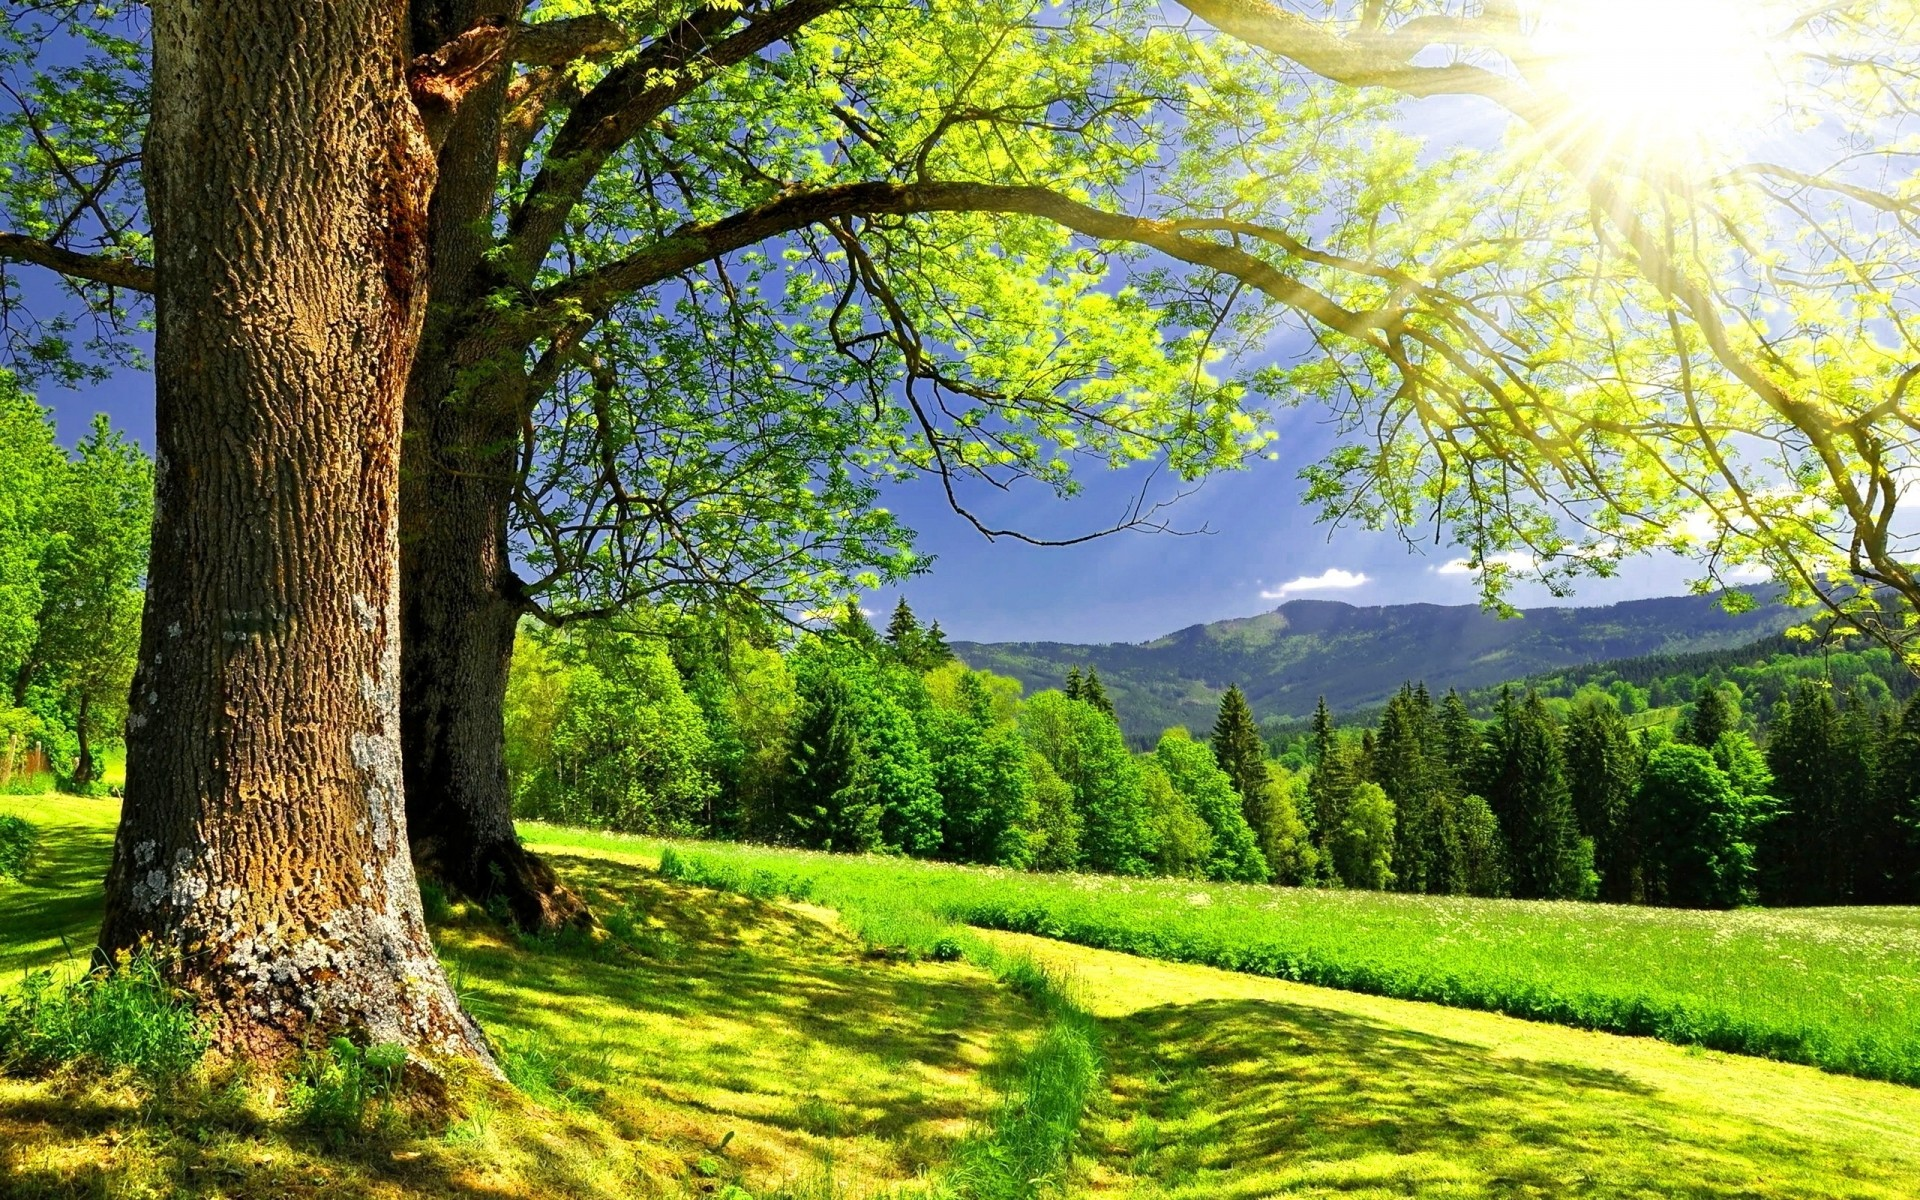 landscapes nature wood landscape tree leaf season rural fair weather park scenery scene grass fall bright scenic sun summer countryside outdoors environment hi res background trees forest hills